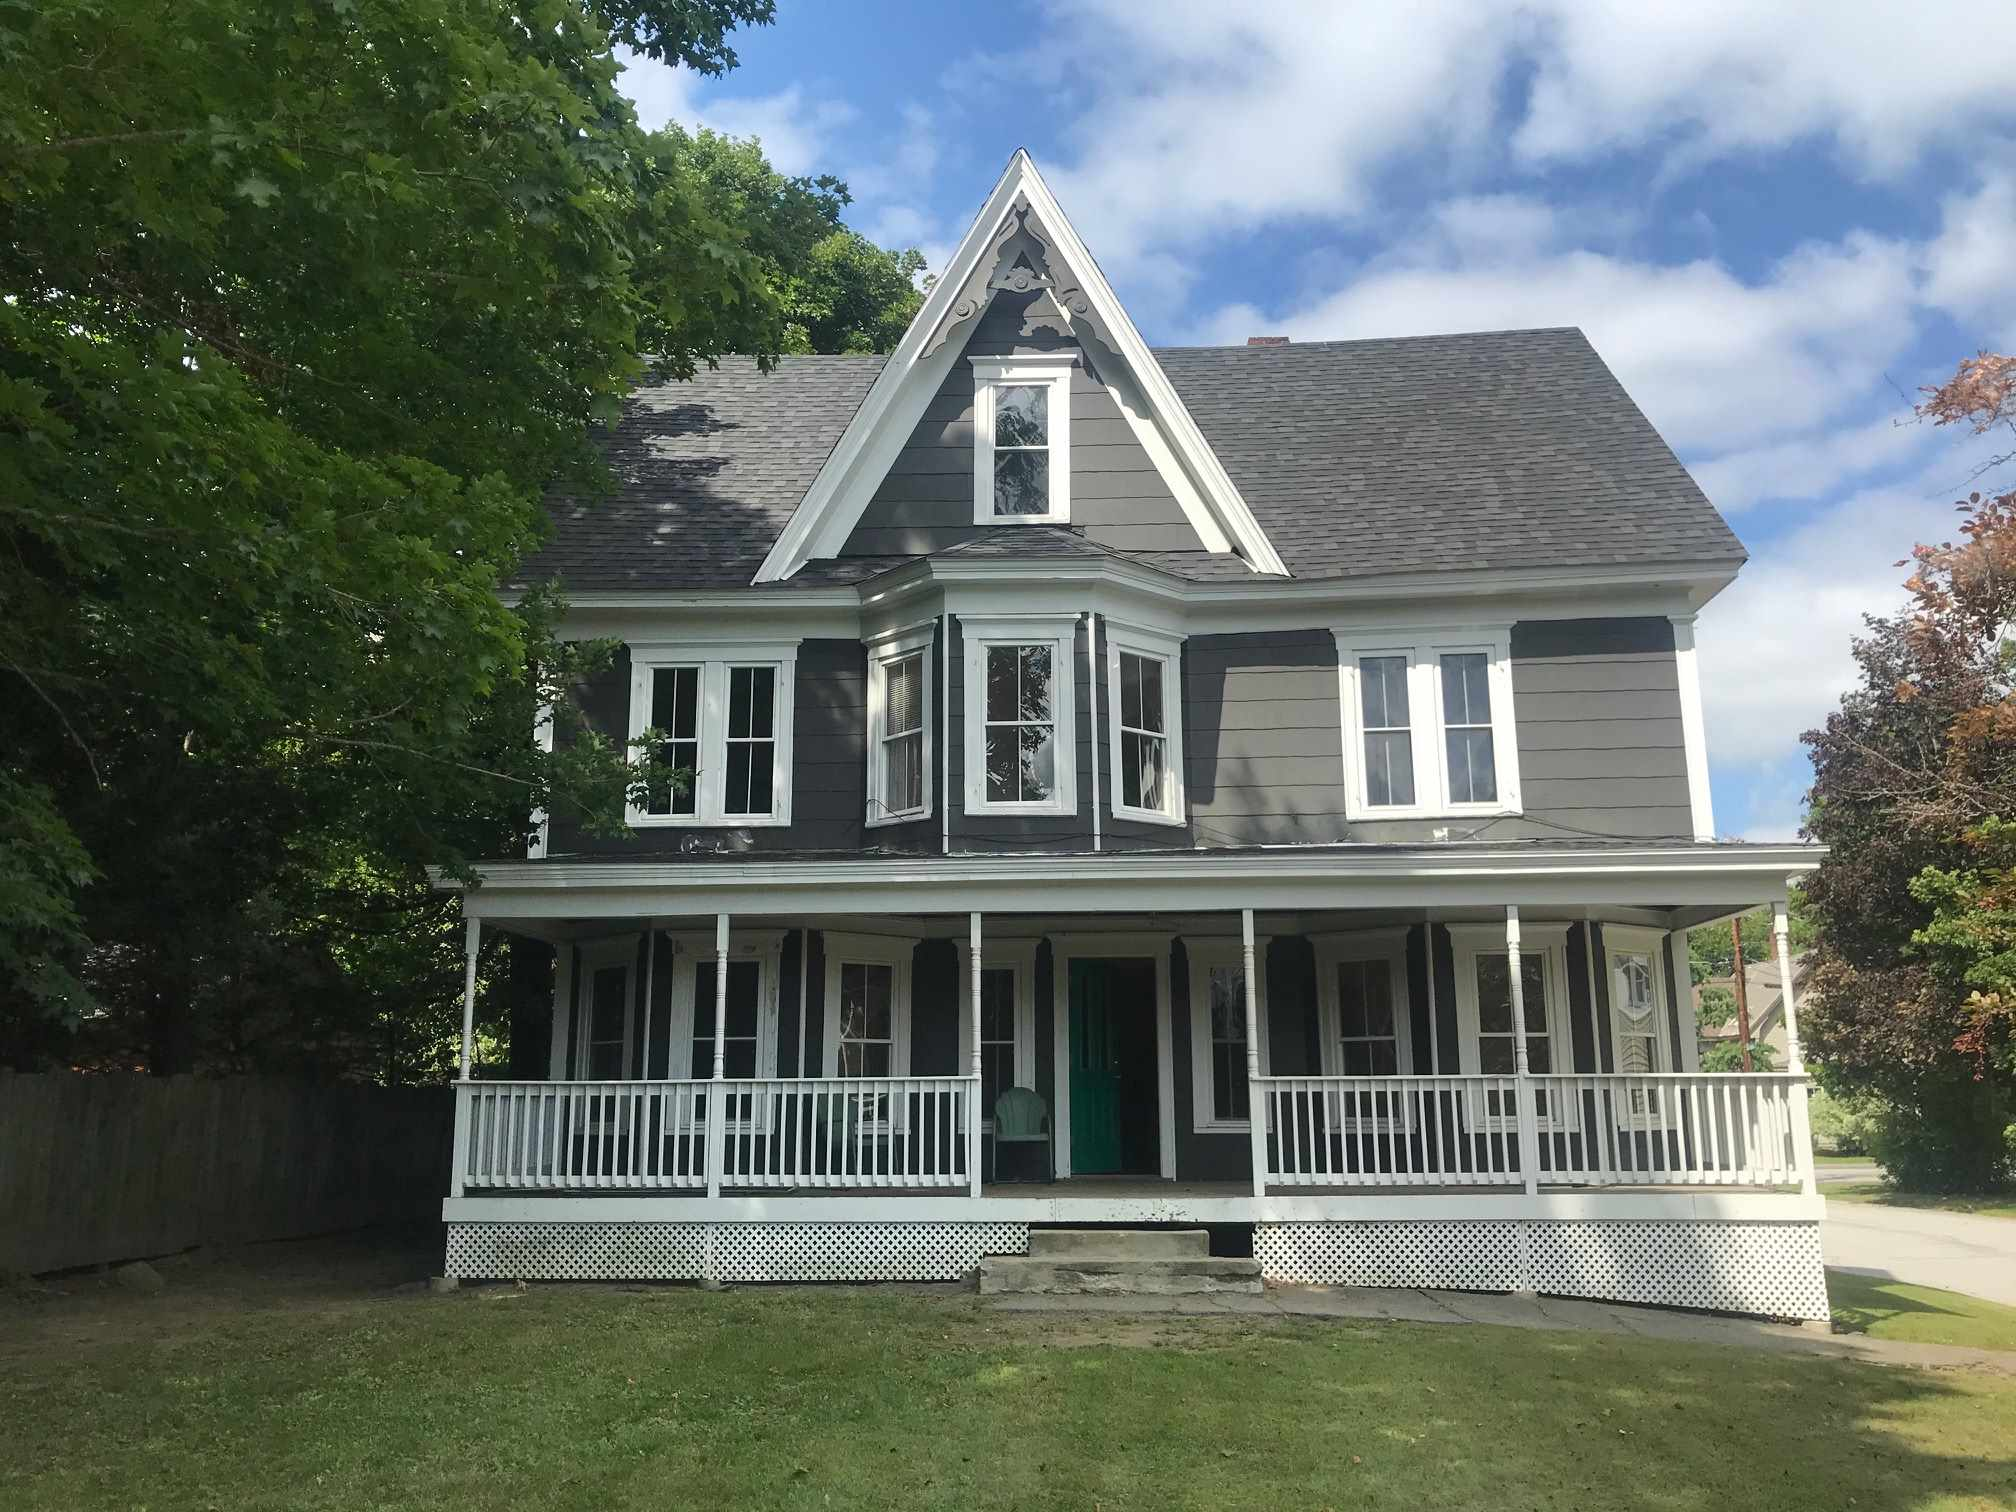 MLS 4783716: 7 Crawford Street, Plymouth NH